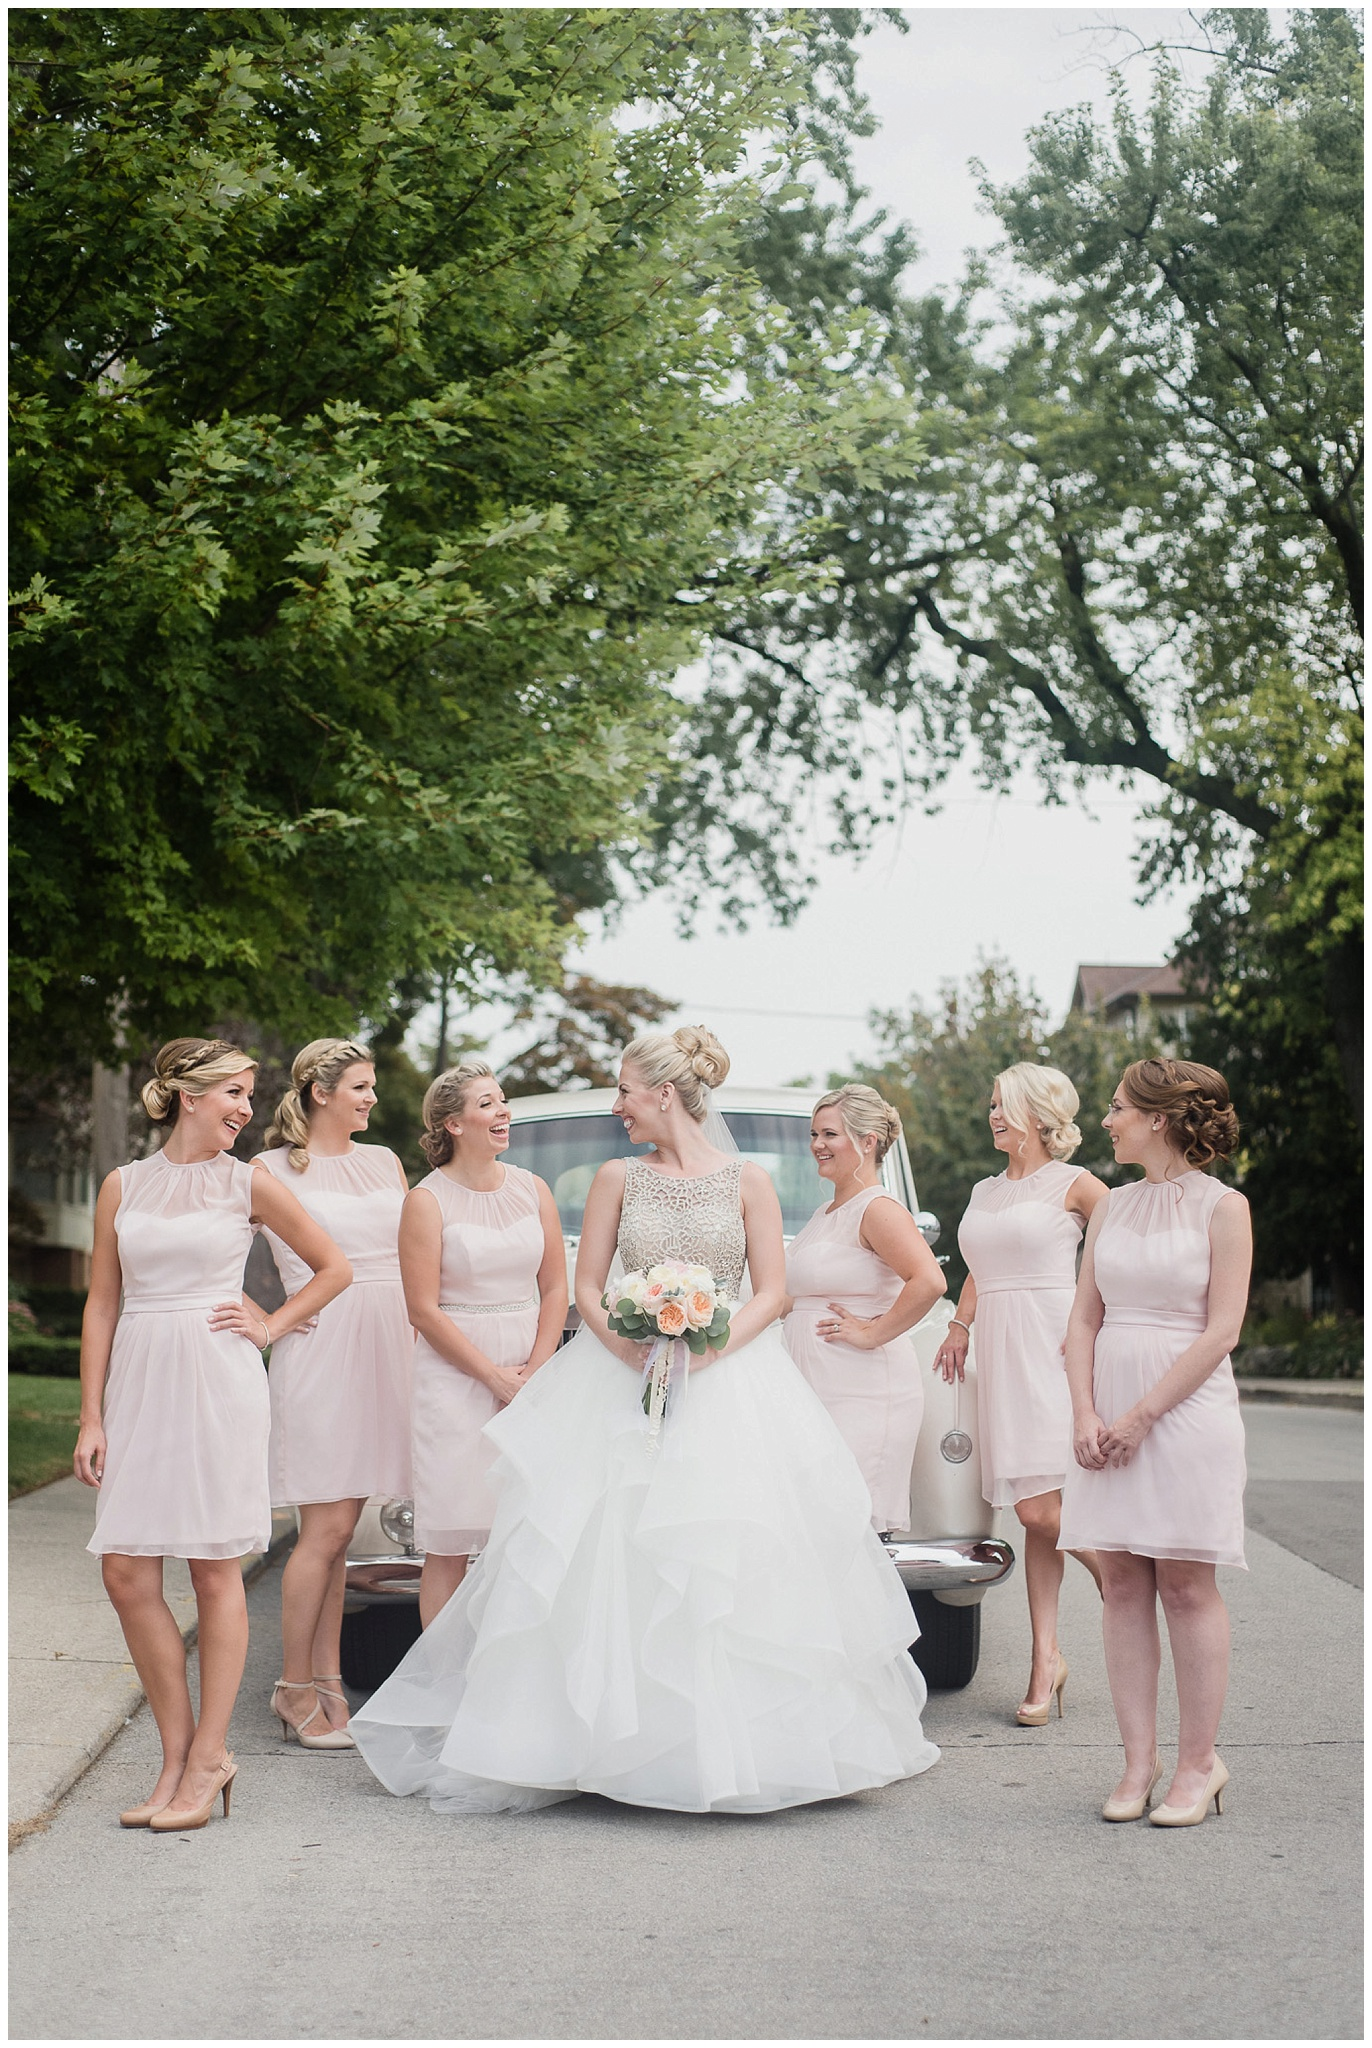 Blush pink bridemaid dresses photographed by Jenn Kavanagh Photography